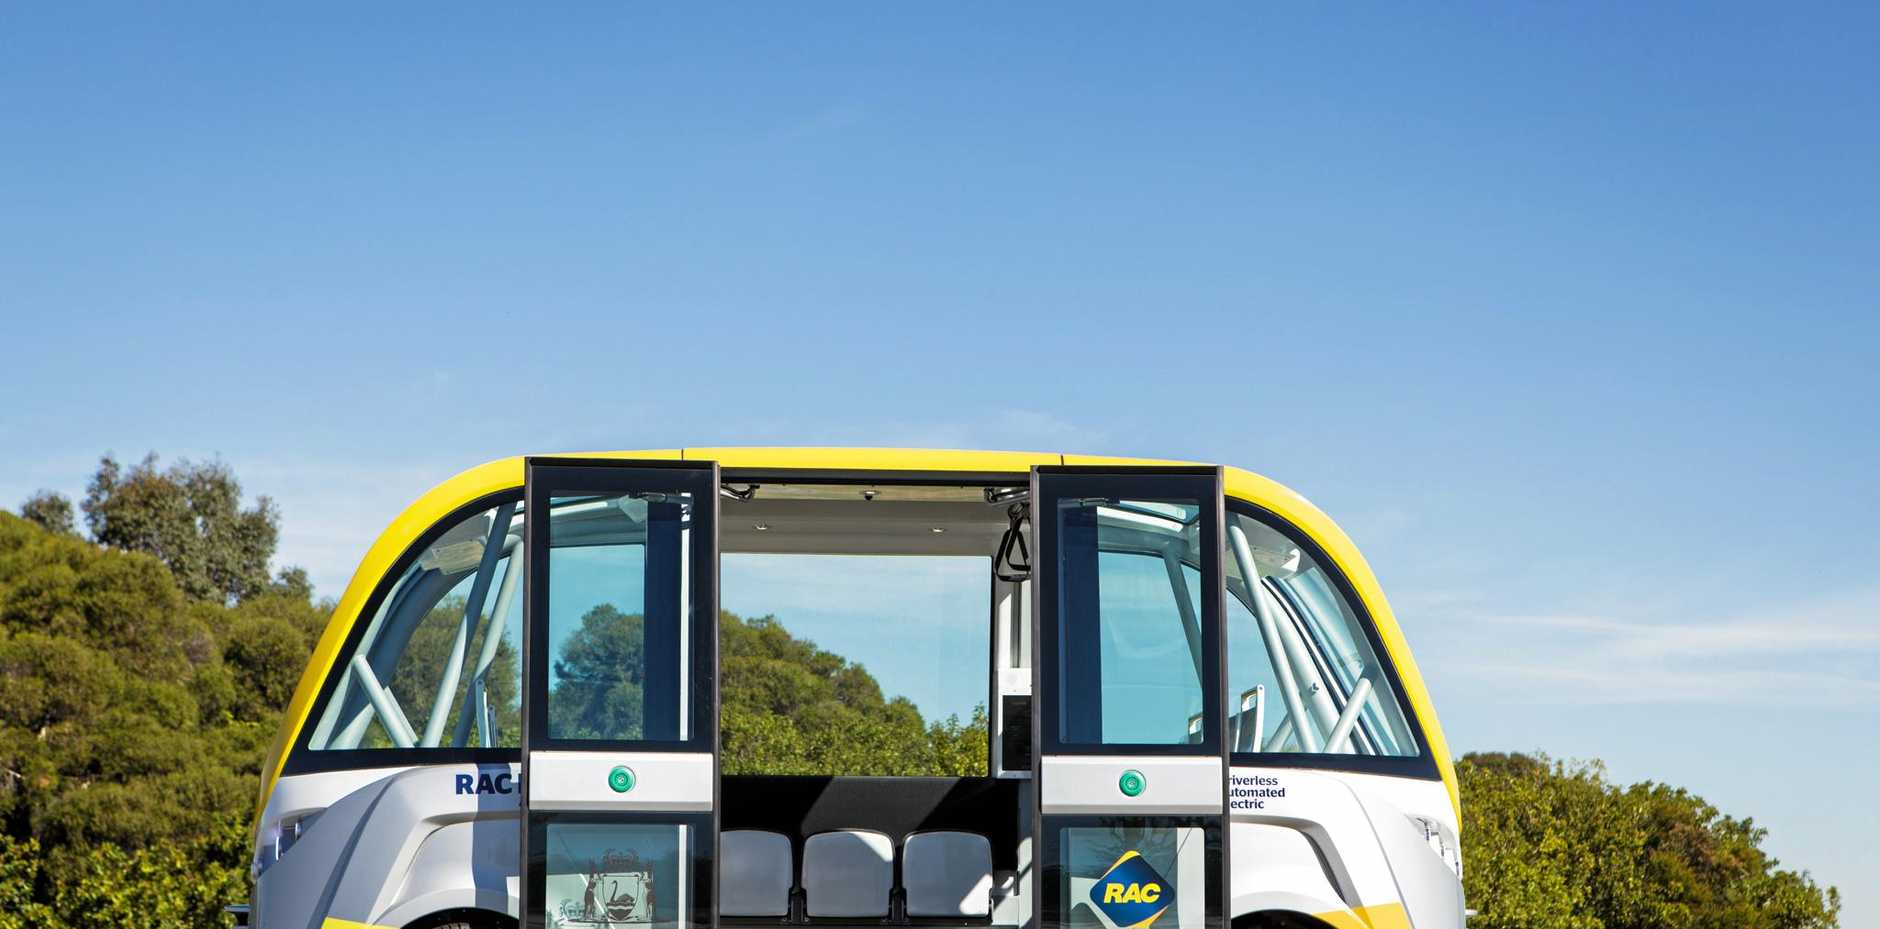 DRIVER-FREE: The RAC Intellibus is an electric, driverless bus being tested in Perth, WA.